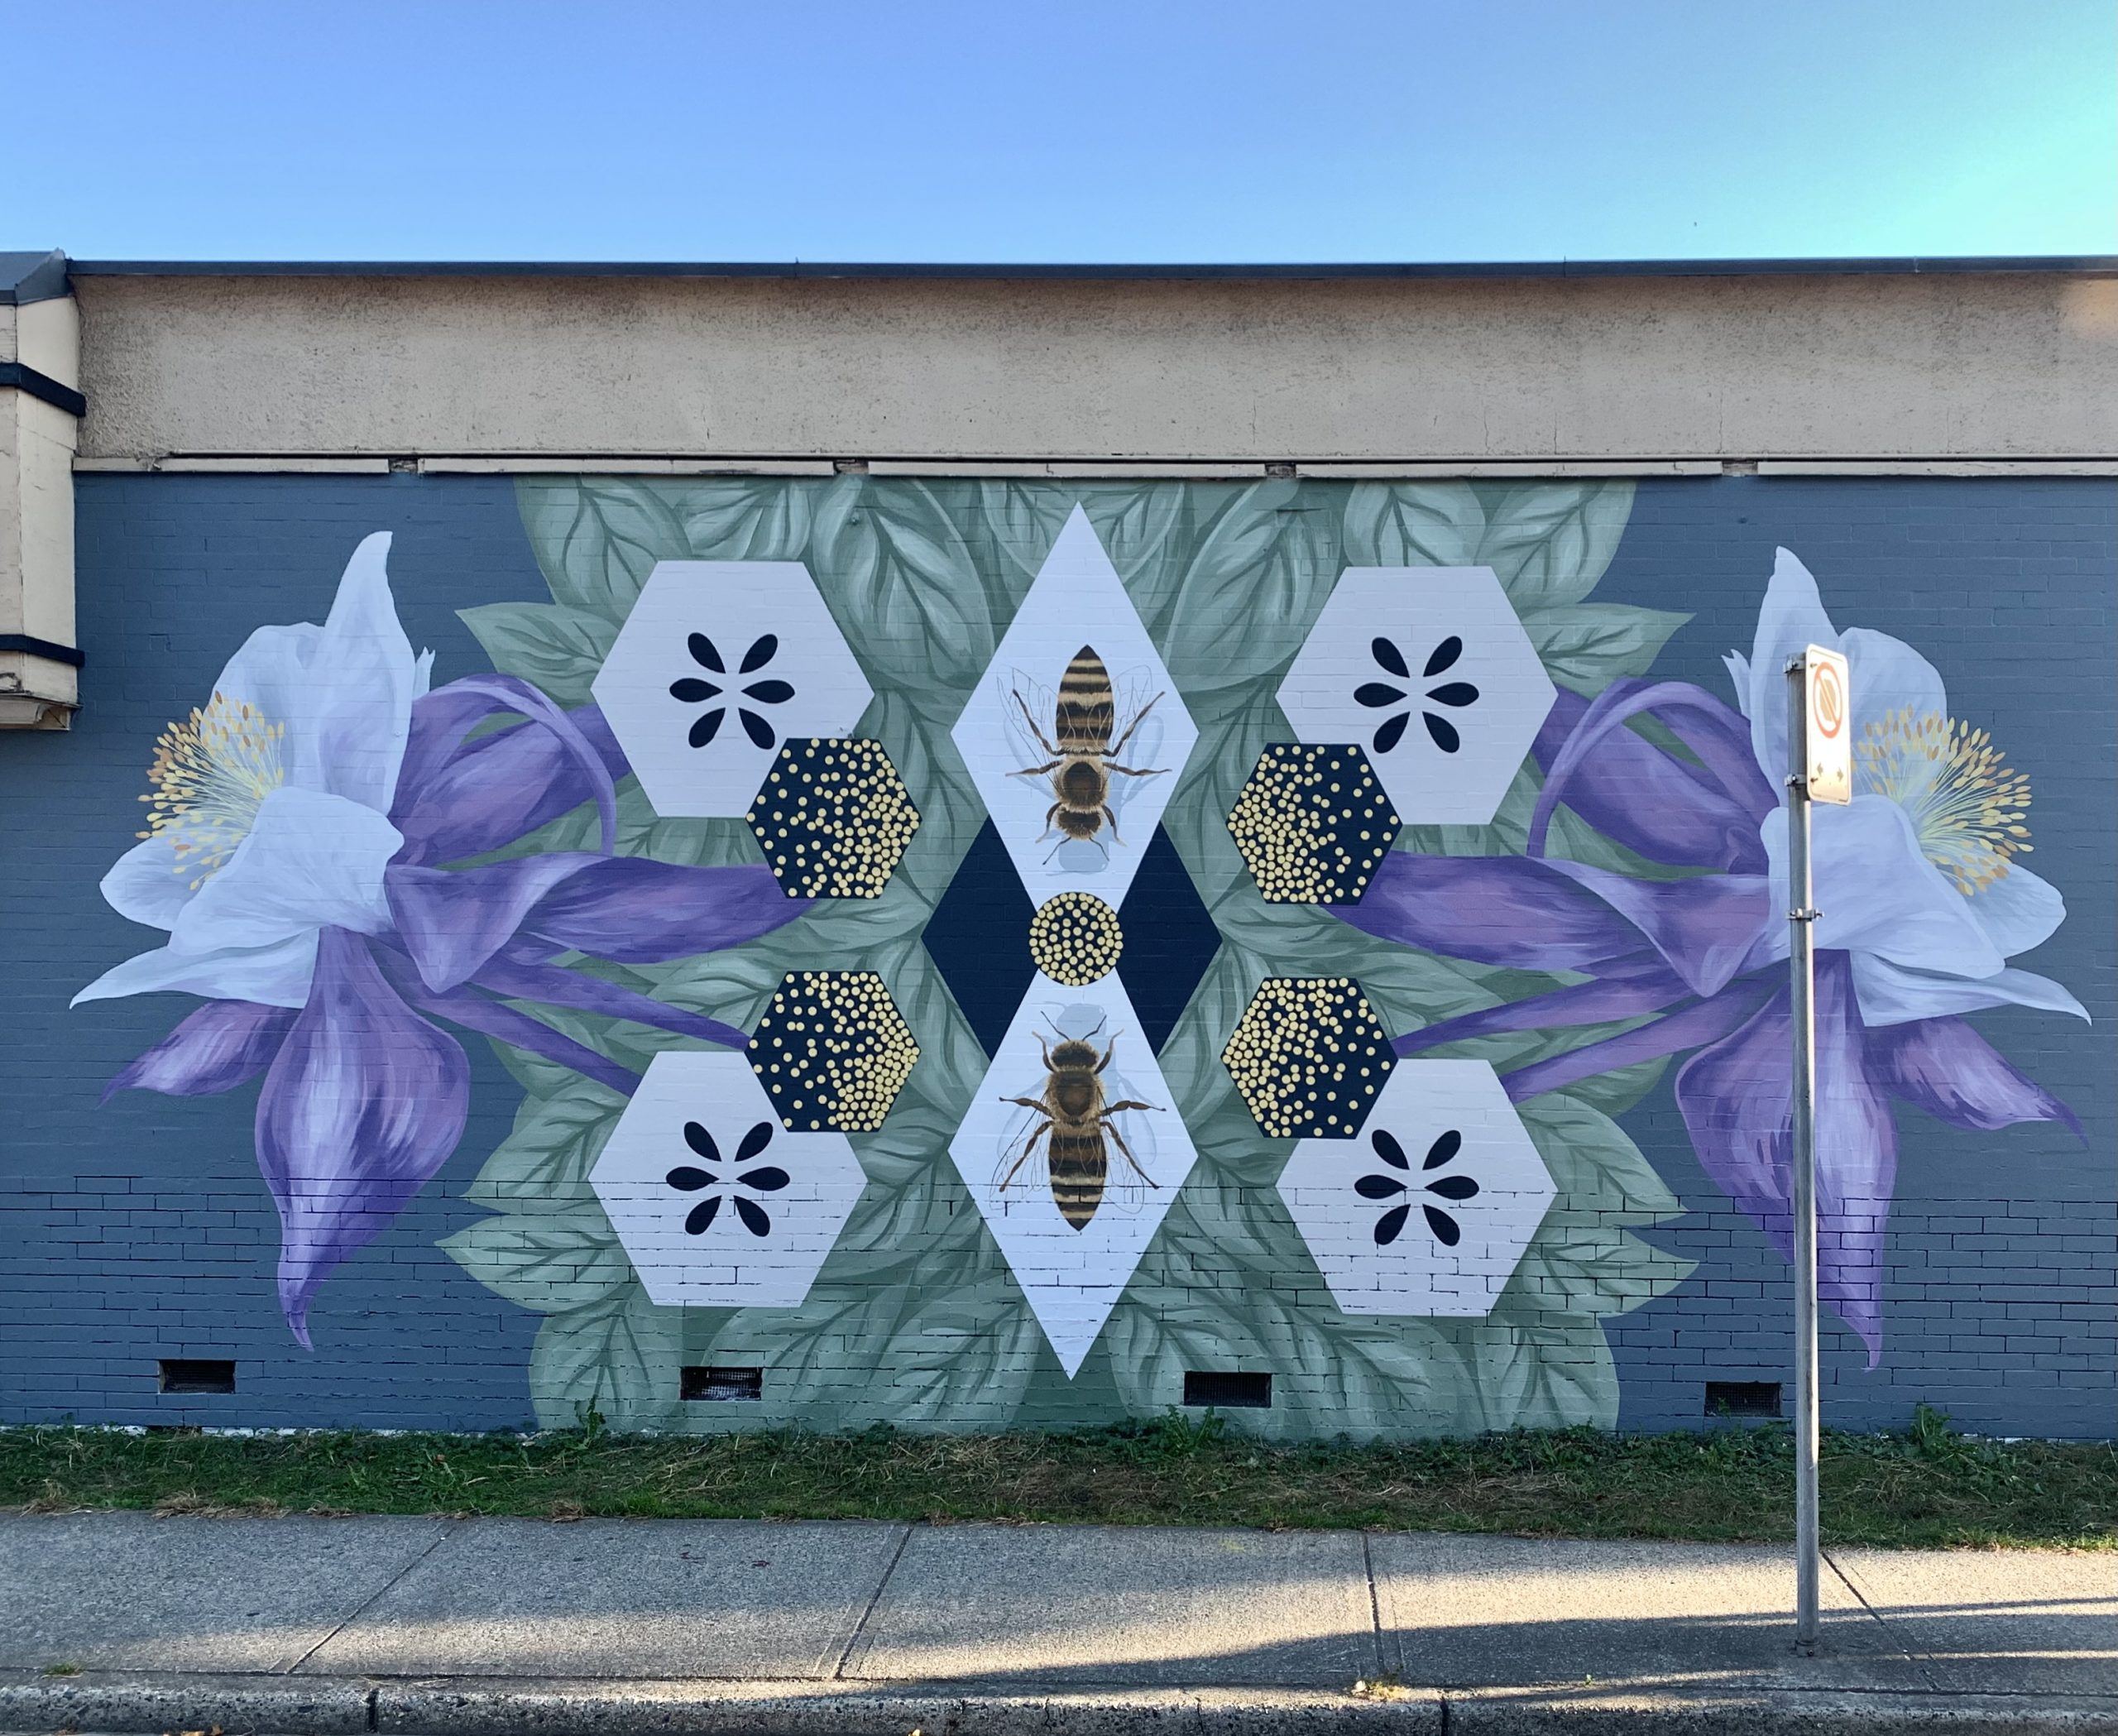 Blog #33 New Life in Urban Spaces